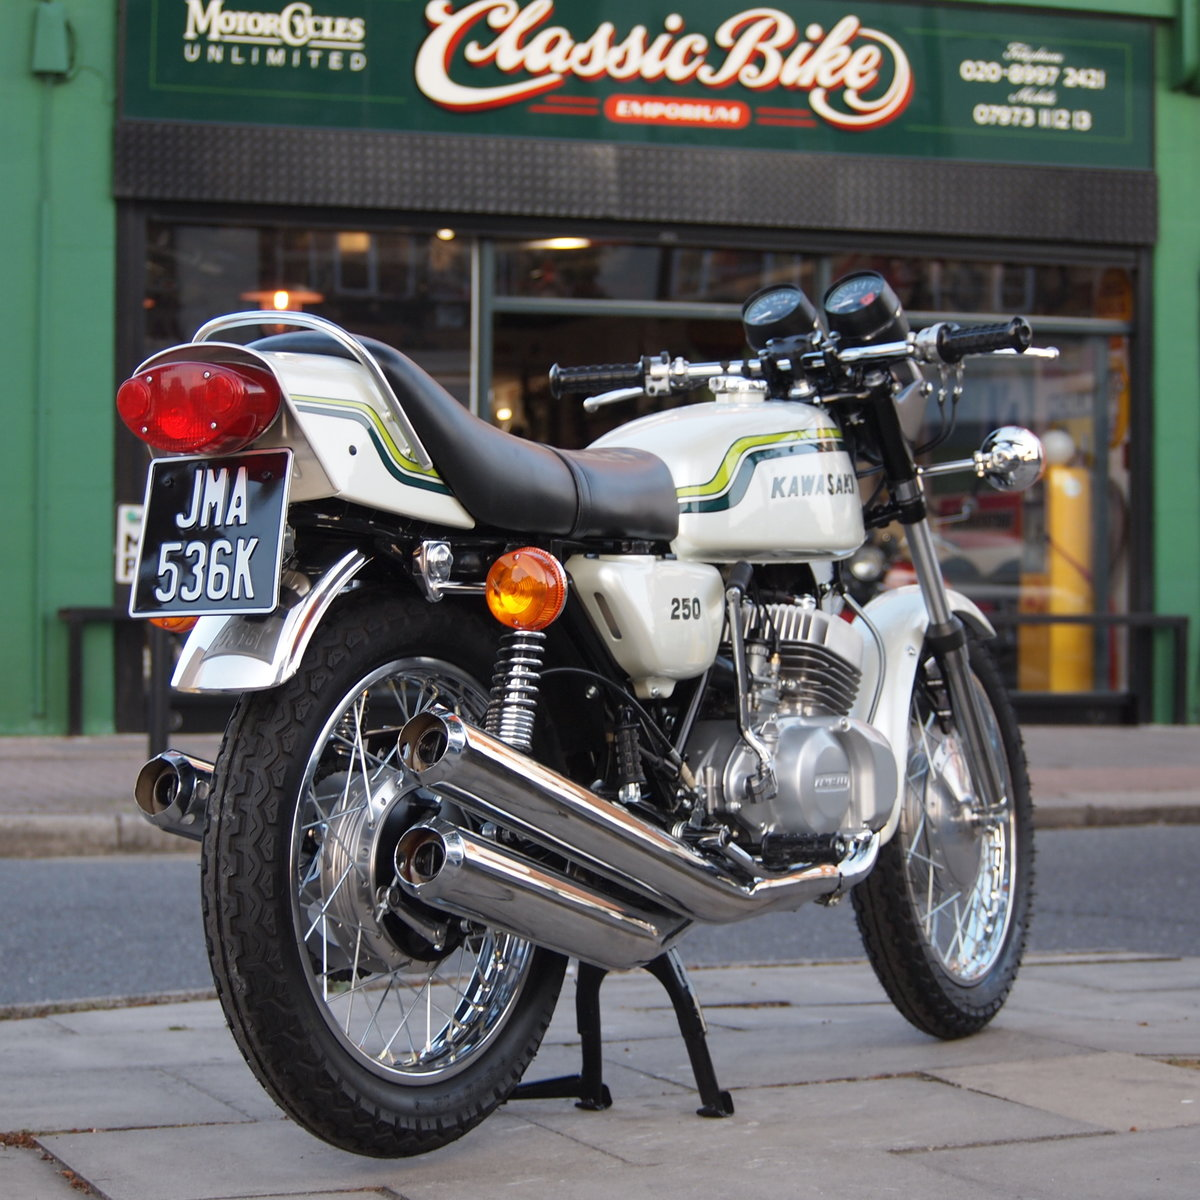 1972 Kawasaki S1 250 Triple, RESERVED FOR STEPHEN. SOLD (picture 1 of 6)